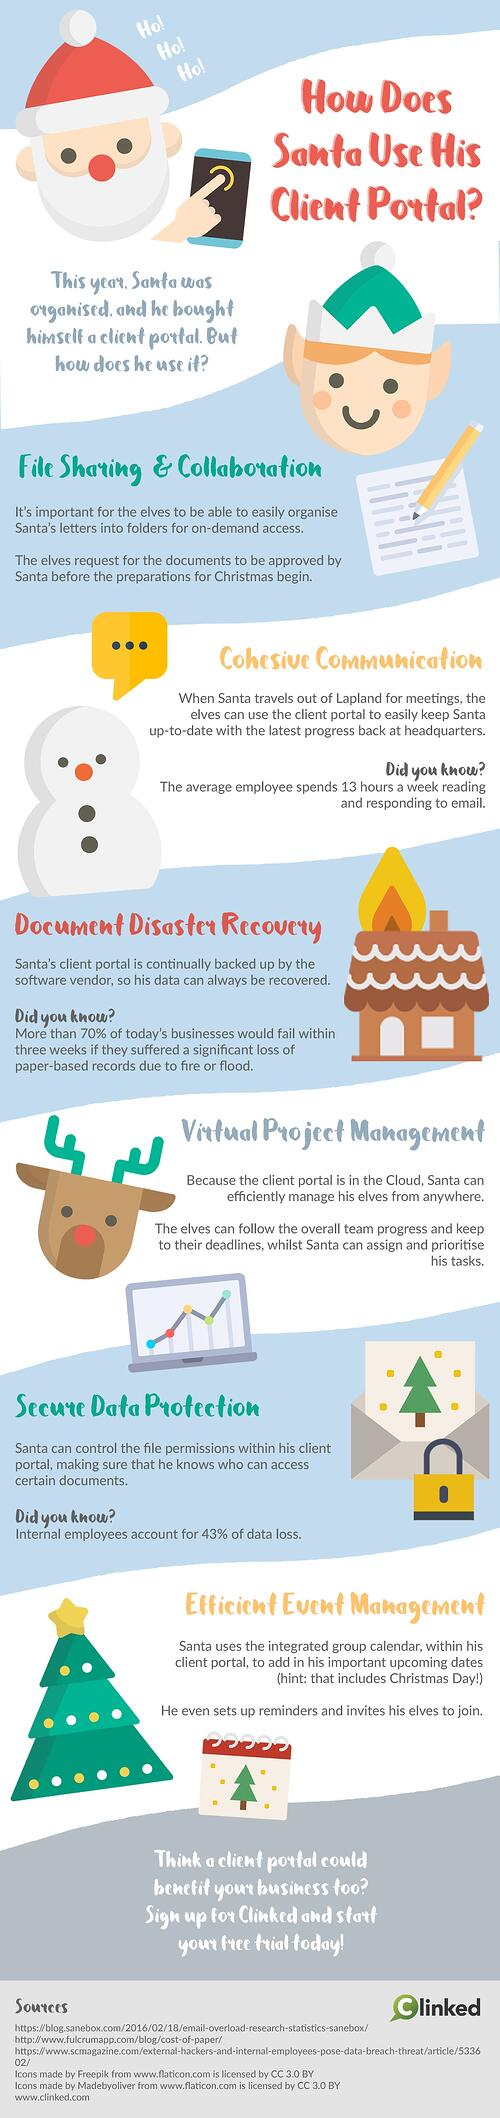 How Santa Uses His Client Portal infographic.jpg